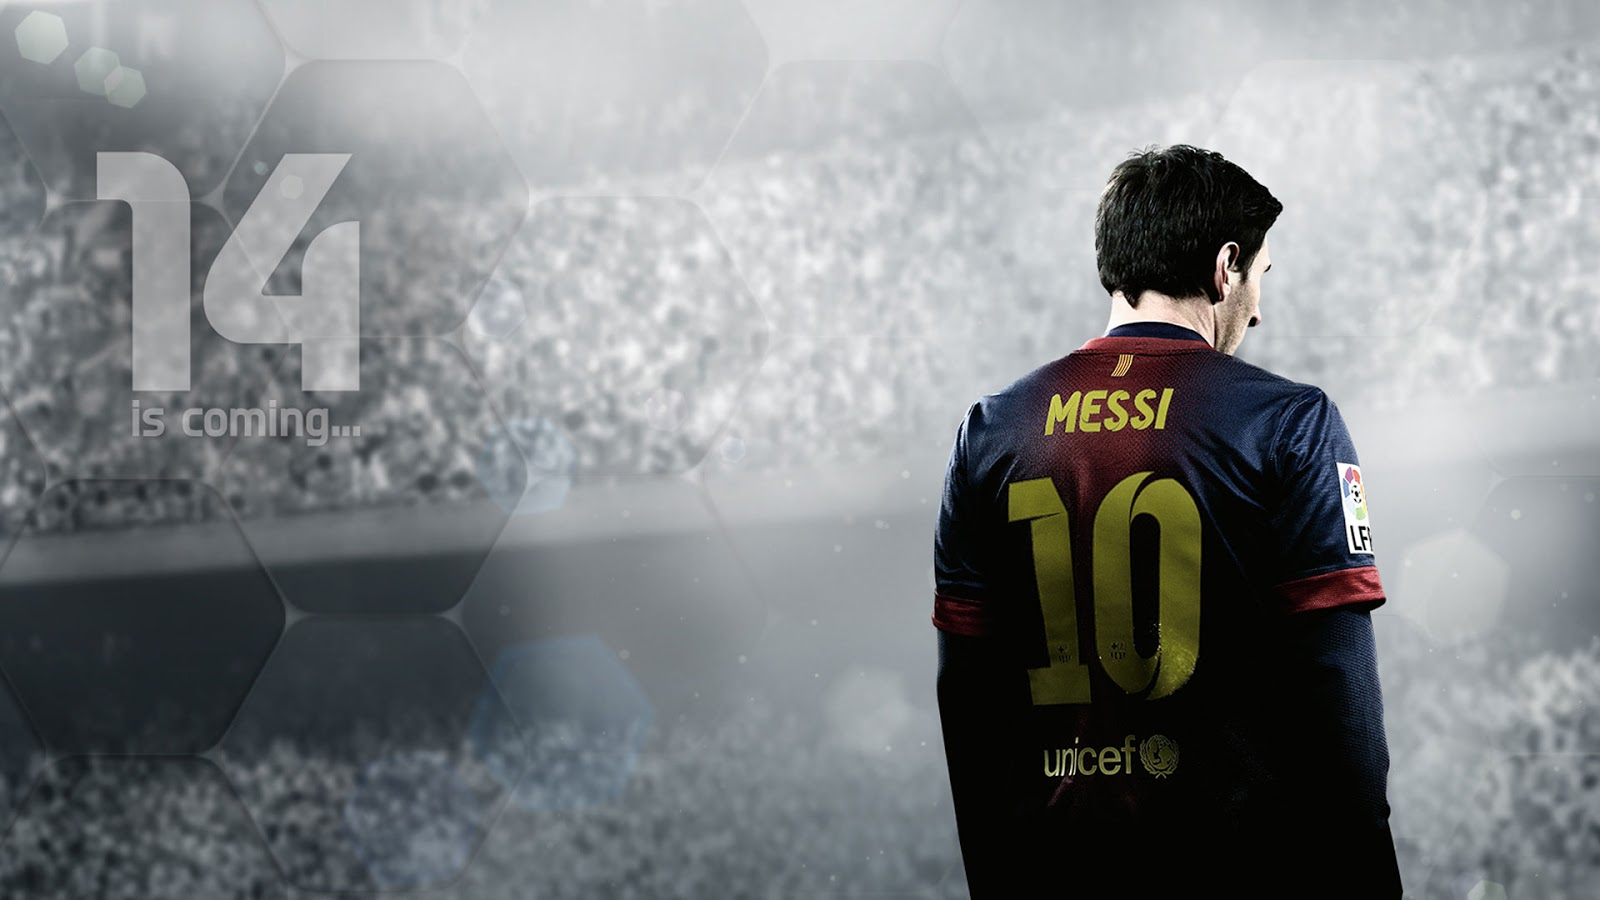 FIFA 14 Lionel Messi Wallpaper HD